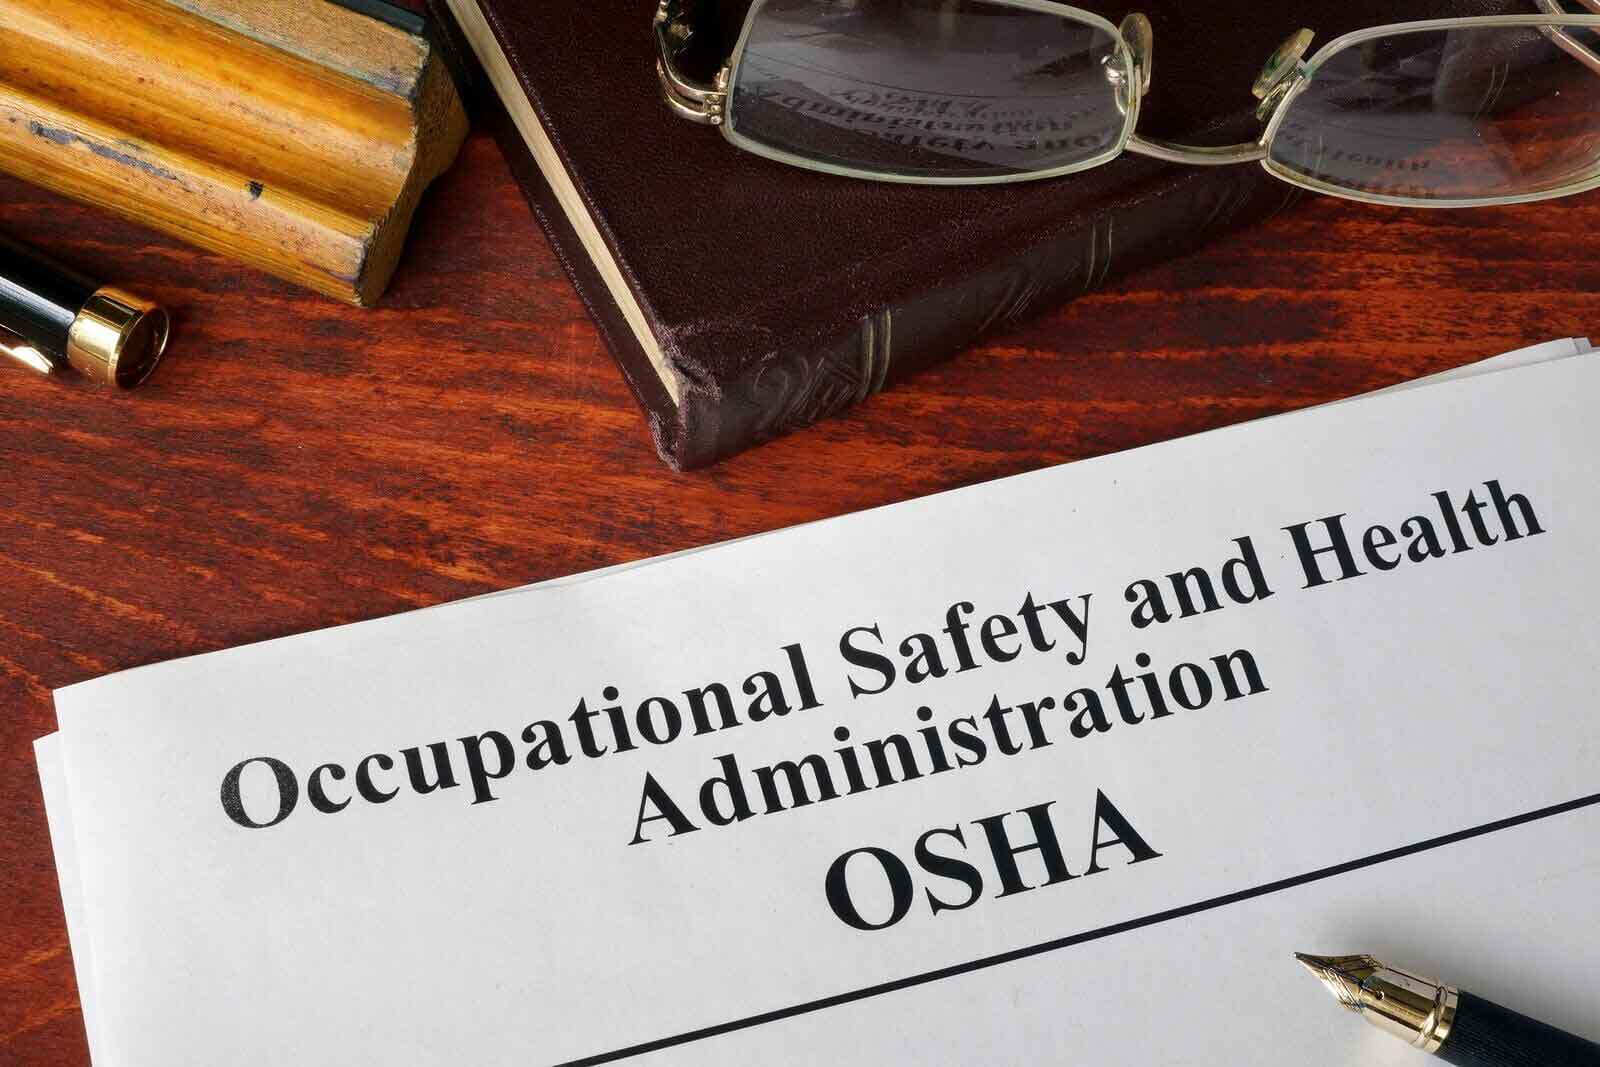 Why Its Important For Forklift Operators To Have An Osha Certification